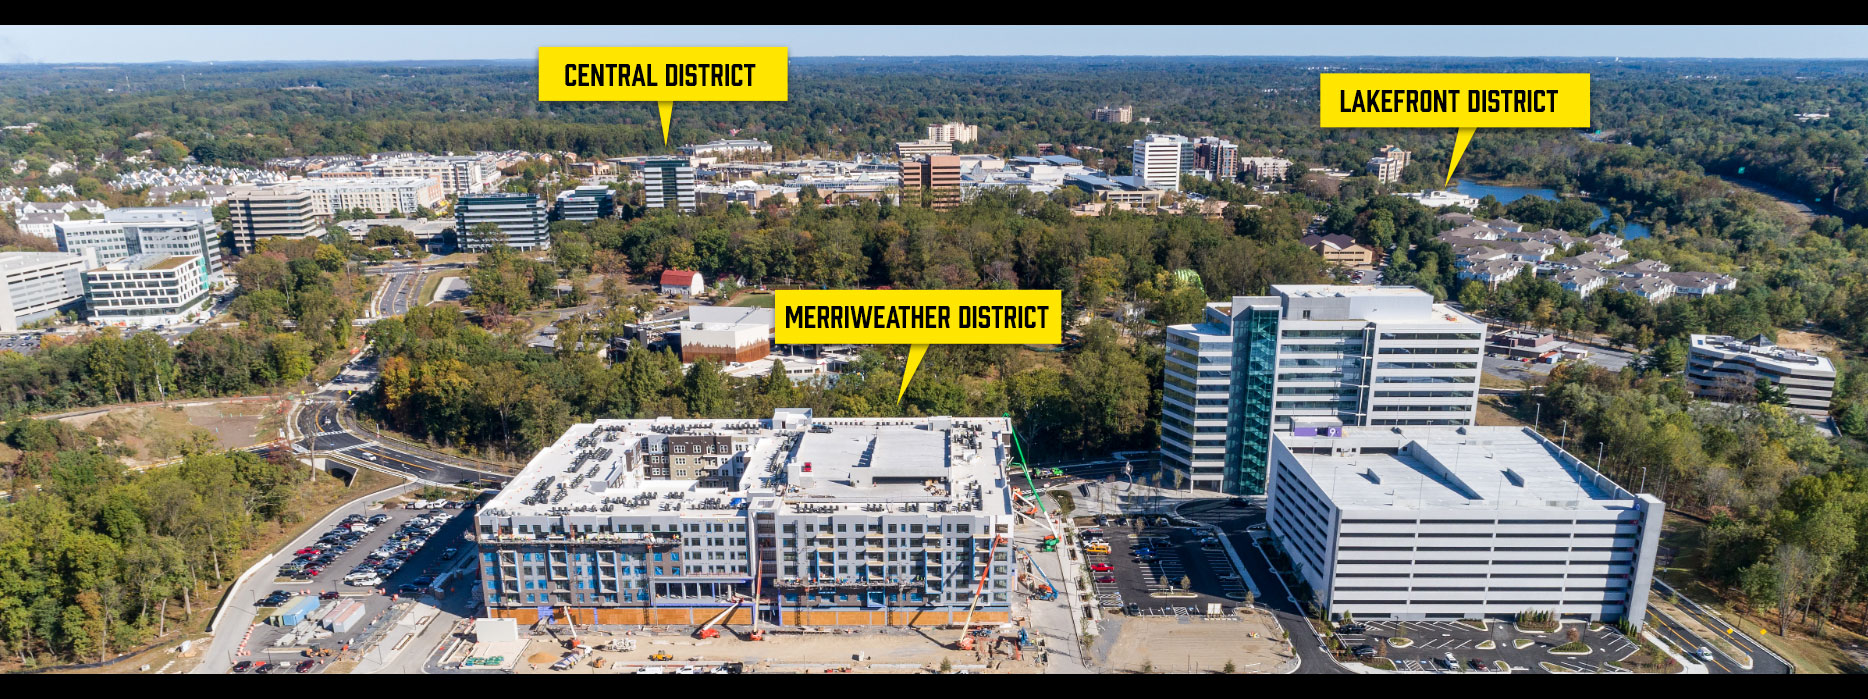 Central, Merriweather and Lakefront Districts